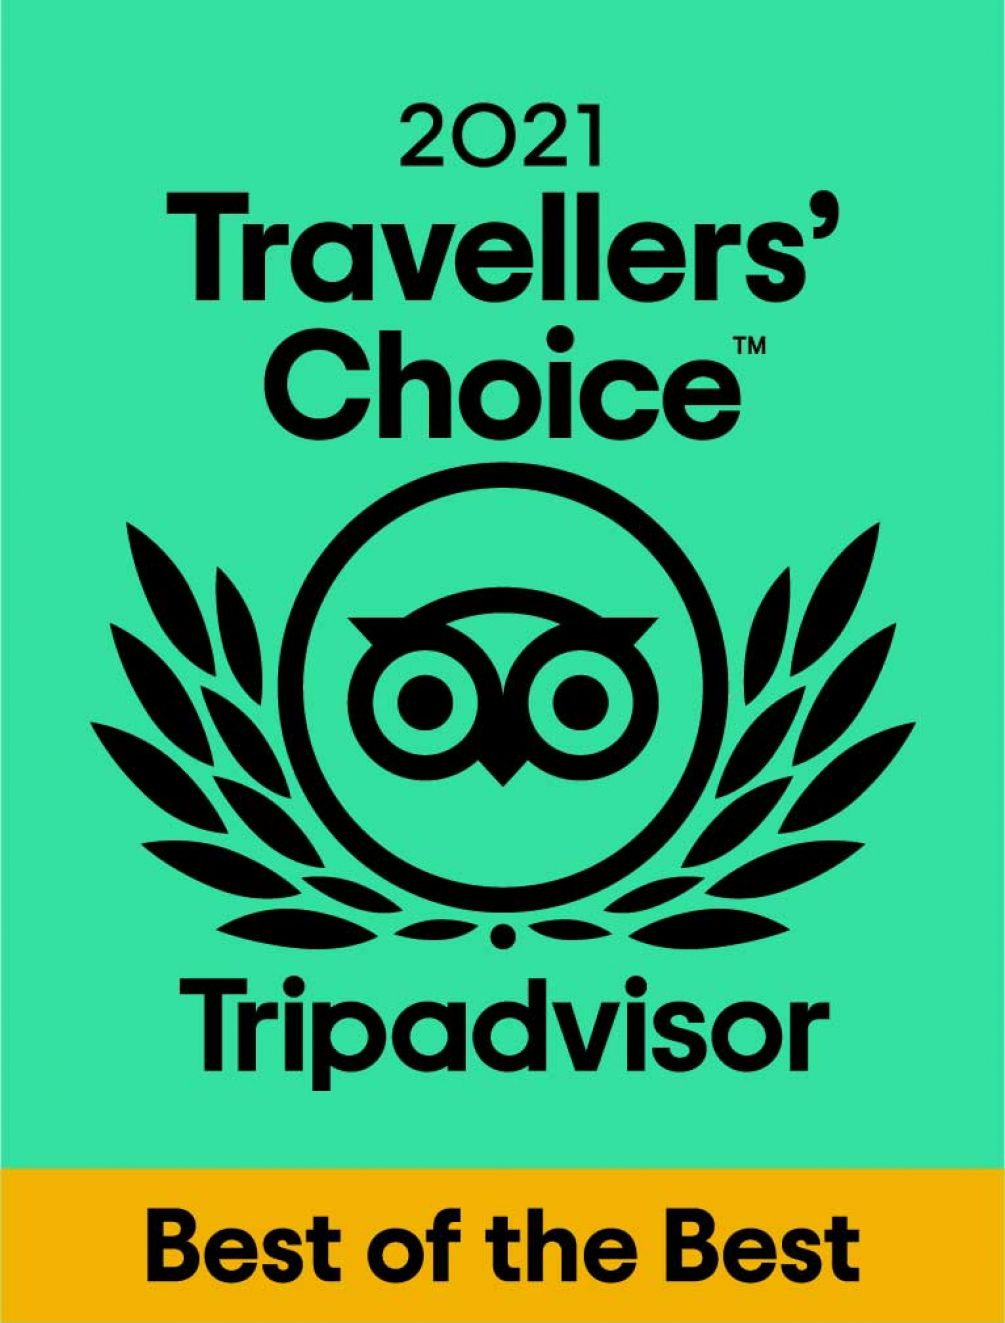 Tripadvisor travellers choice Best of the Best 2021, Events Park Hotel  Argento Levanto